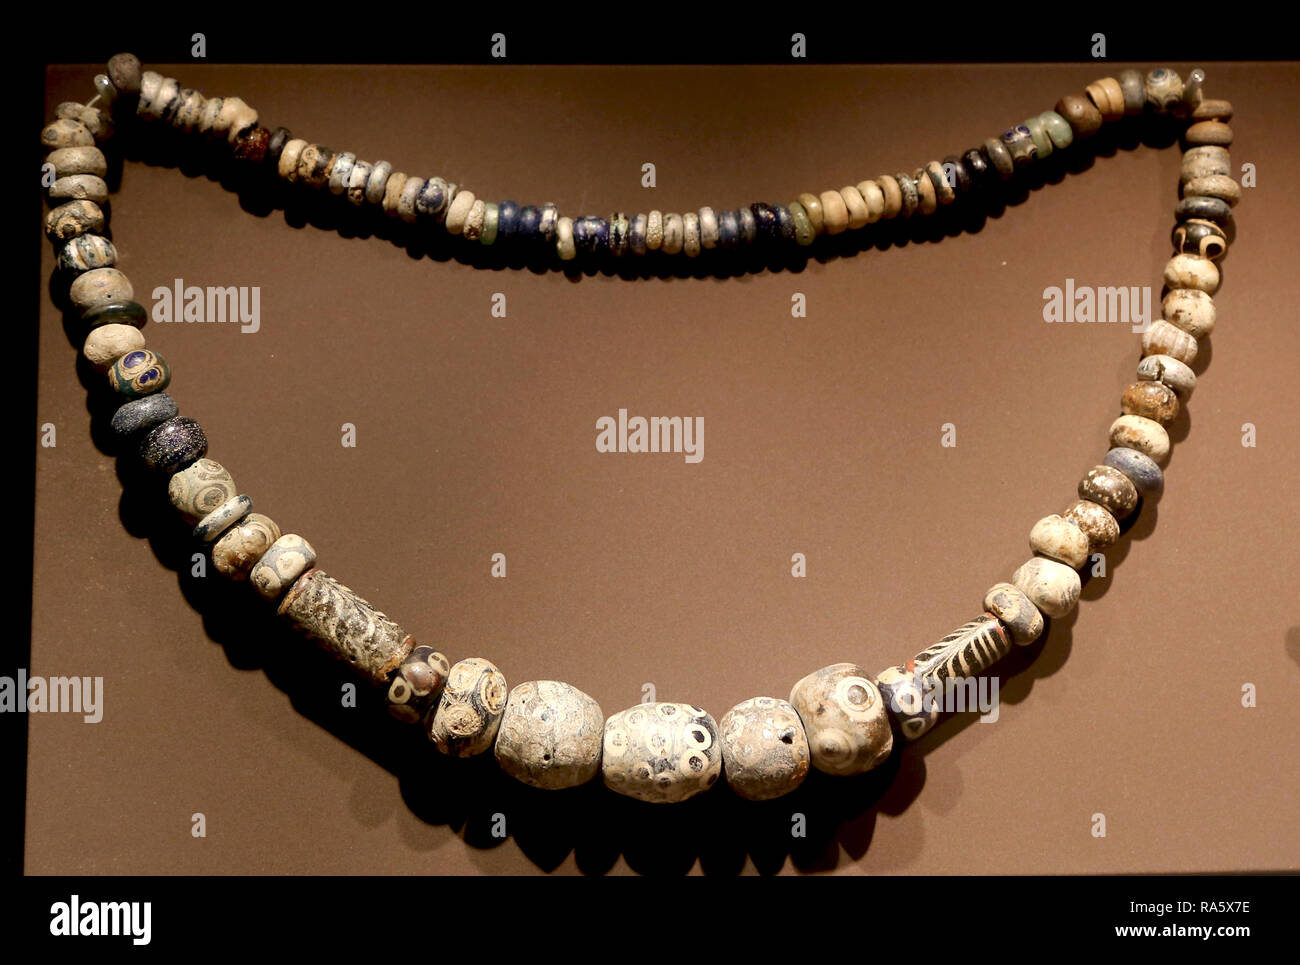 Necklace made with vitreous paste beads (cent. 5th-3rd BC). Punic-Ebusitan culture. Ibiza, Mallorca, Baleraic Islands. Spain. - Stock Image